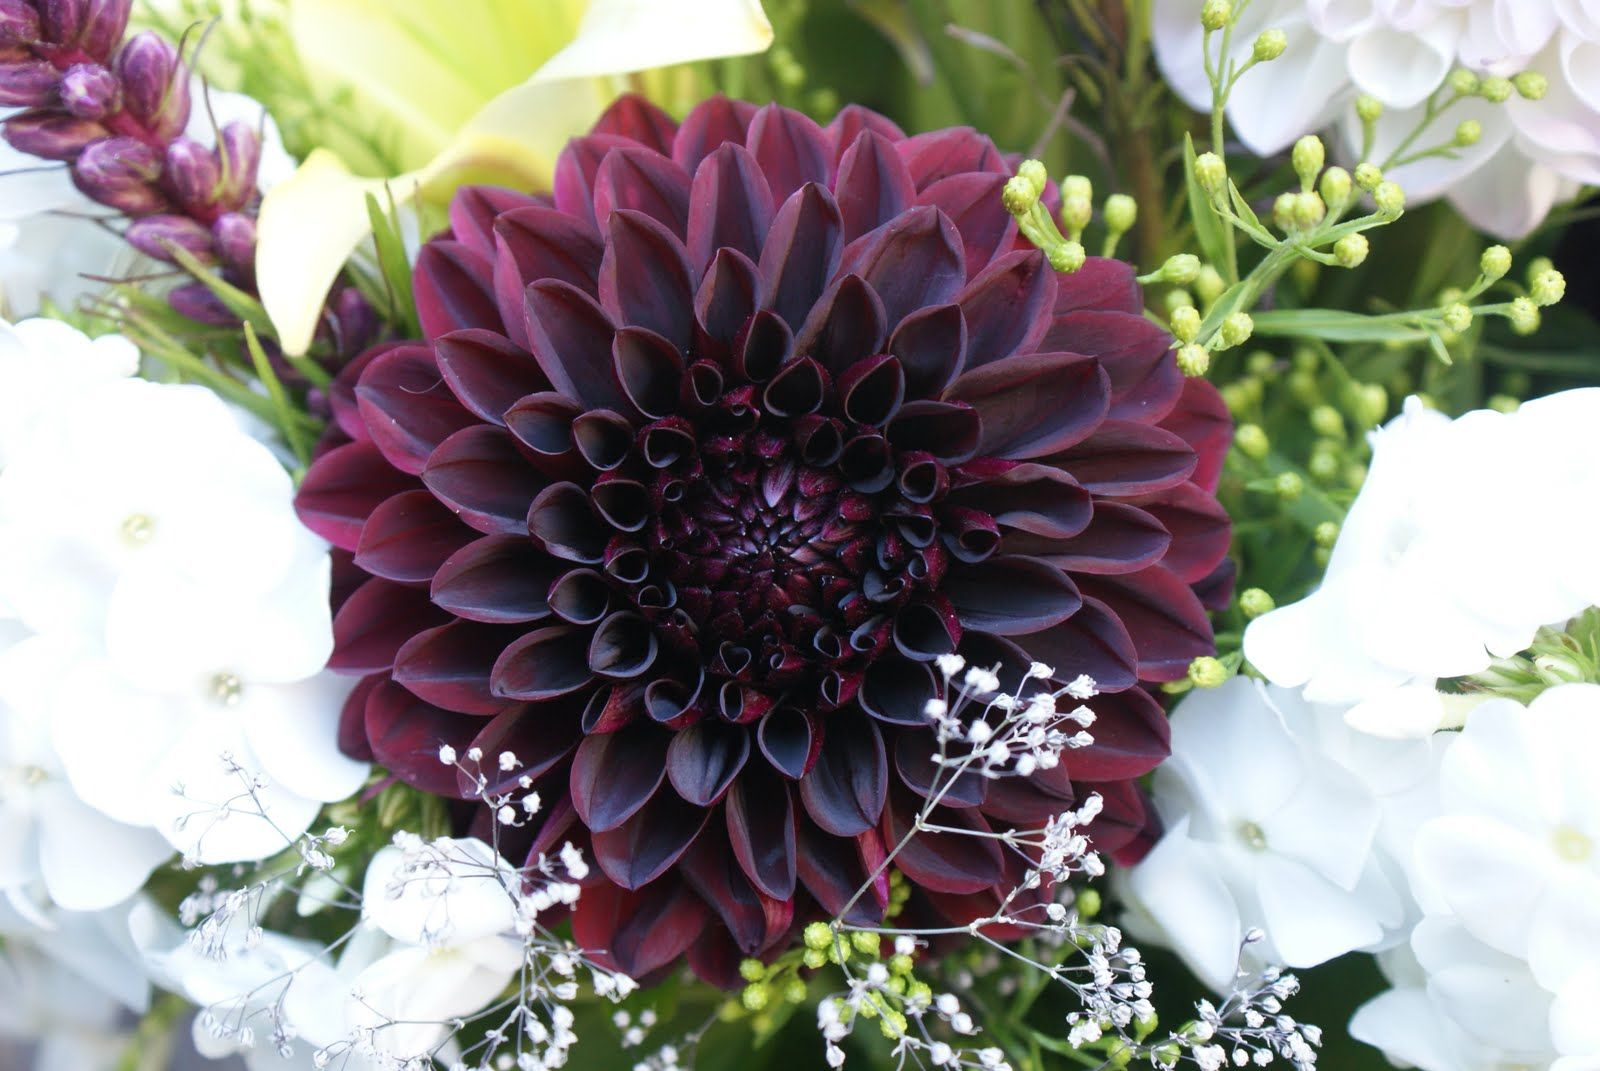 Black dahlia flower email this blogthis share to twitter share to black dahlia flower email this blogthis share to twitter share to facebook izmirmasajfo Gallery